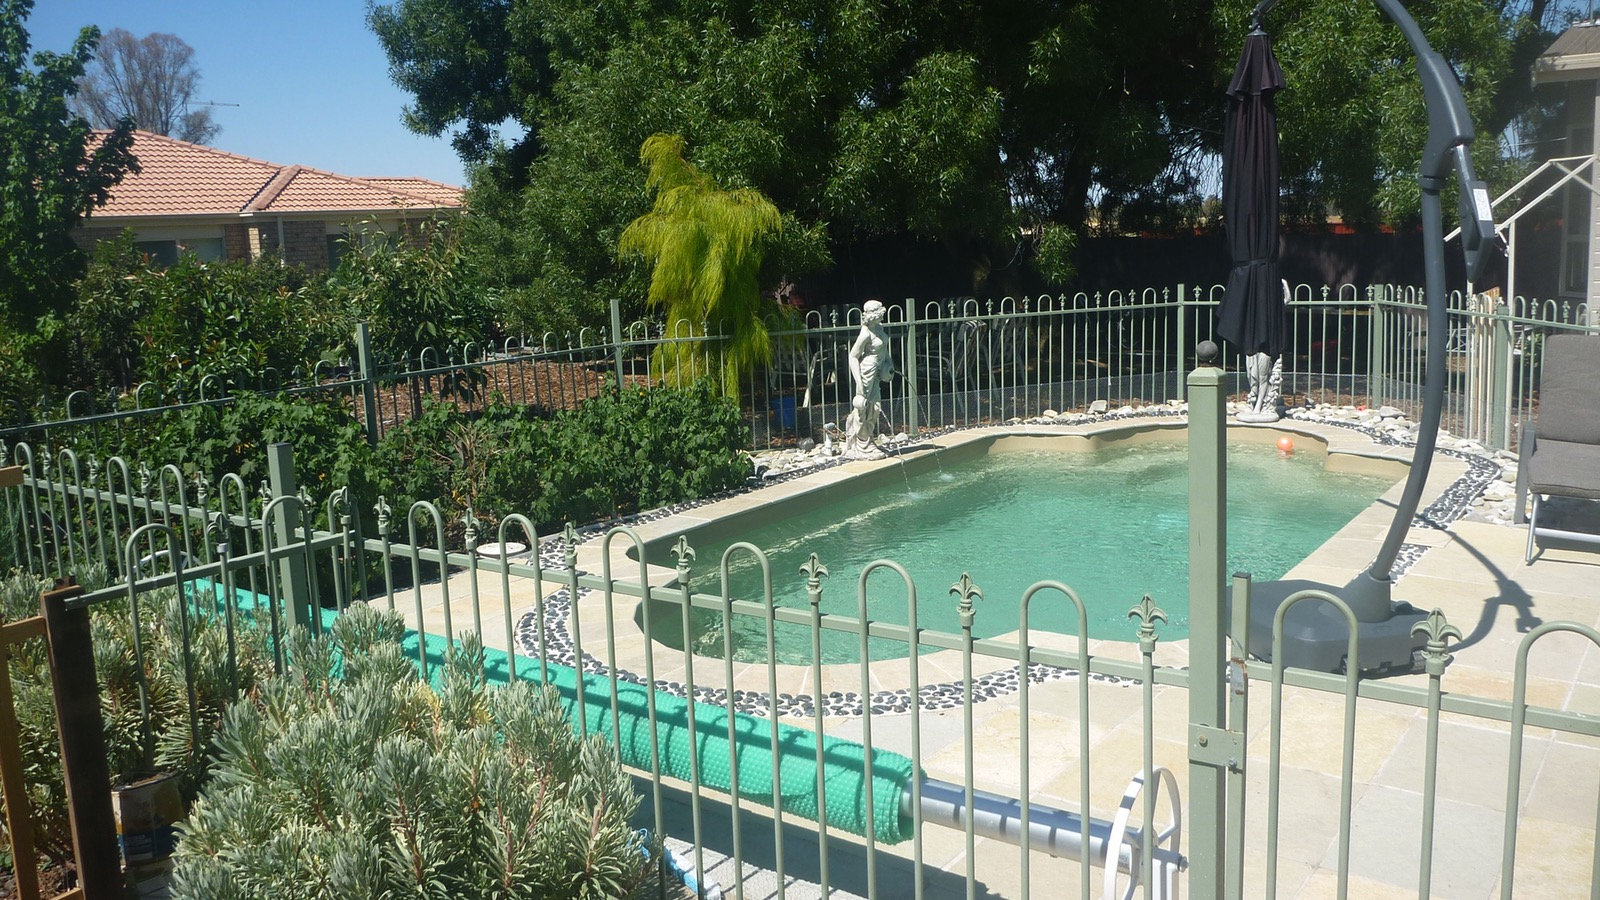 The solar heated pool,a guest favourite in summer